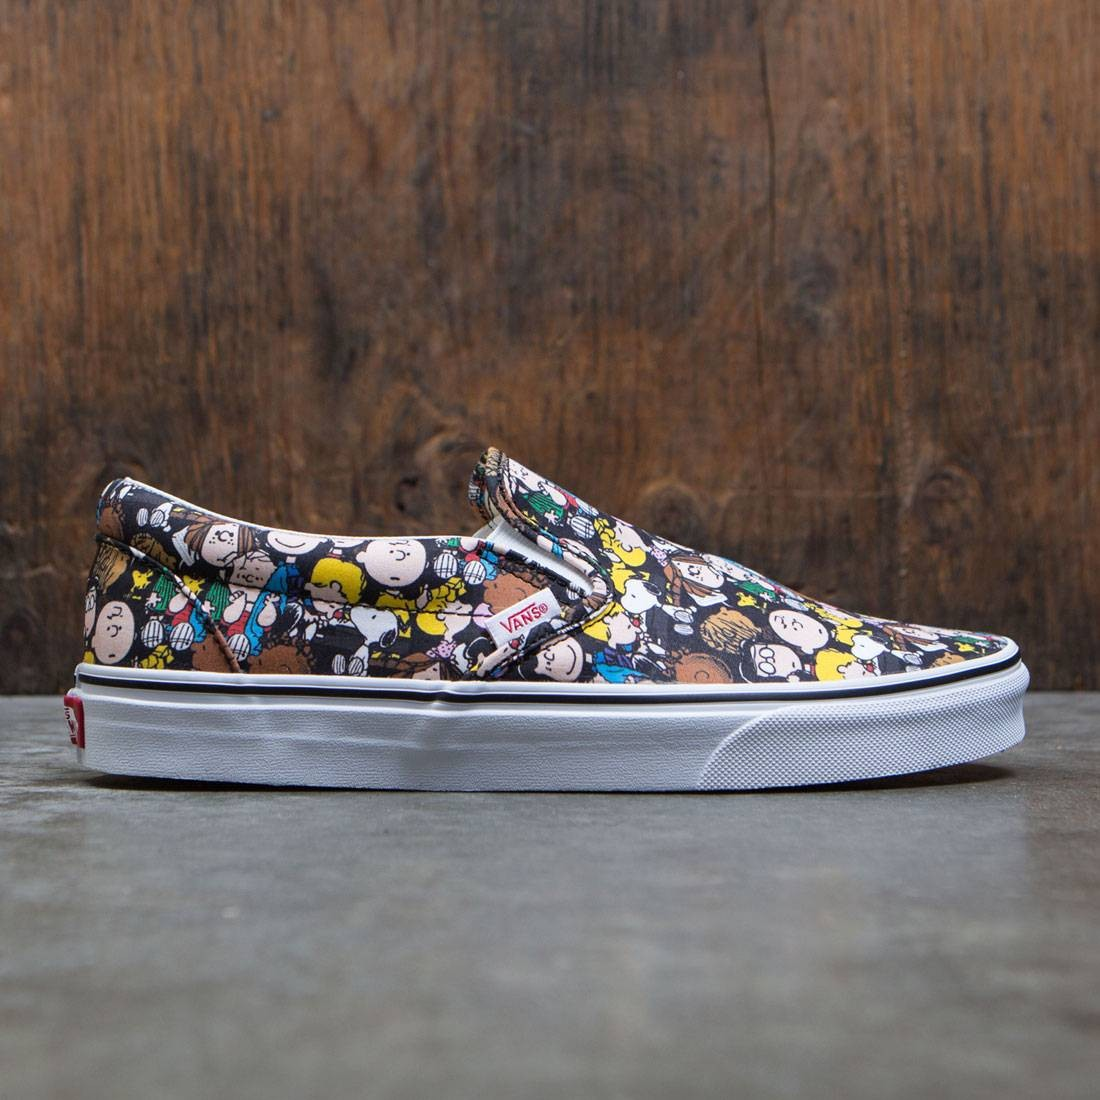 bbcdb83f91bd Vans x Peanuts Men Classic Slip-On - The Gang black